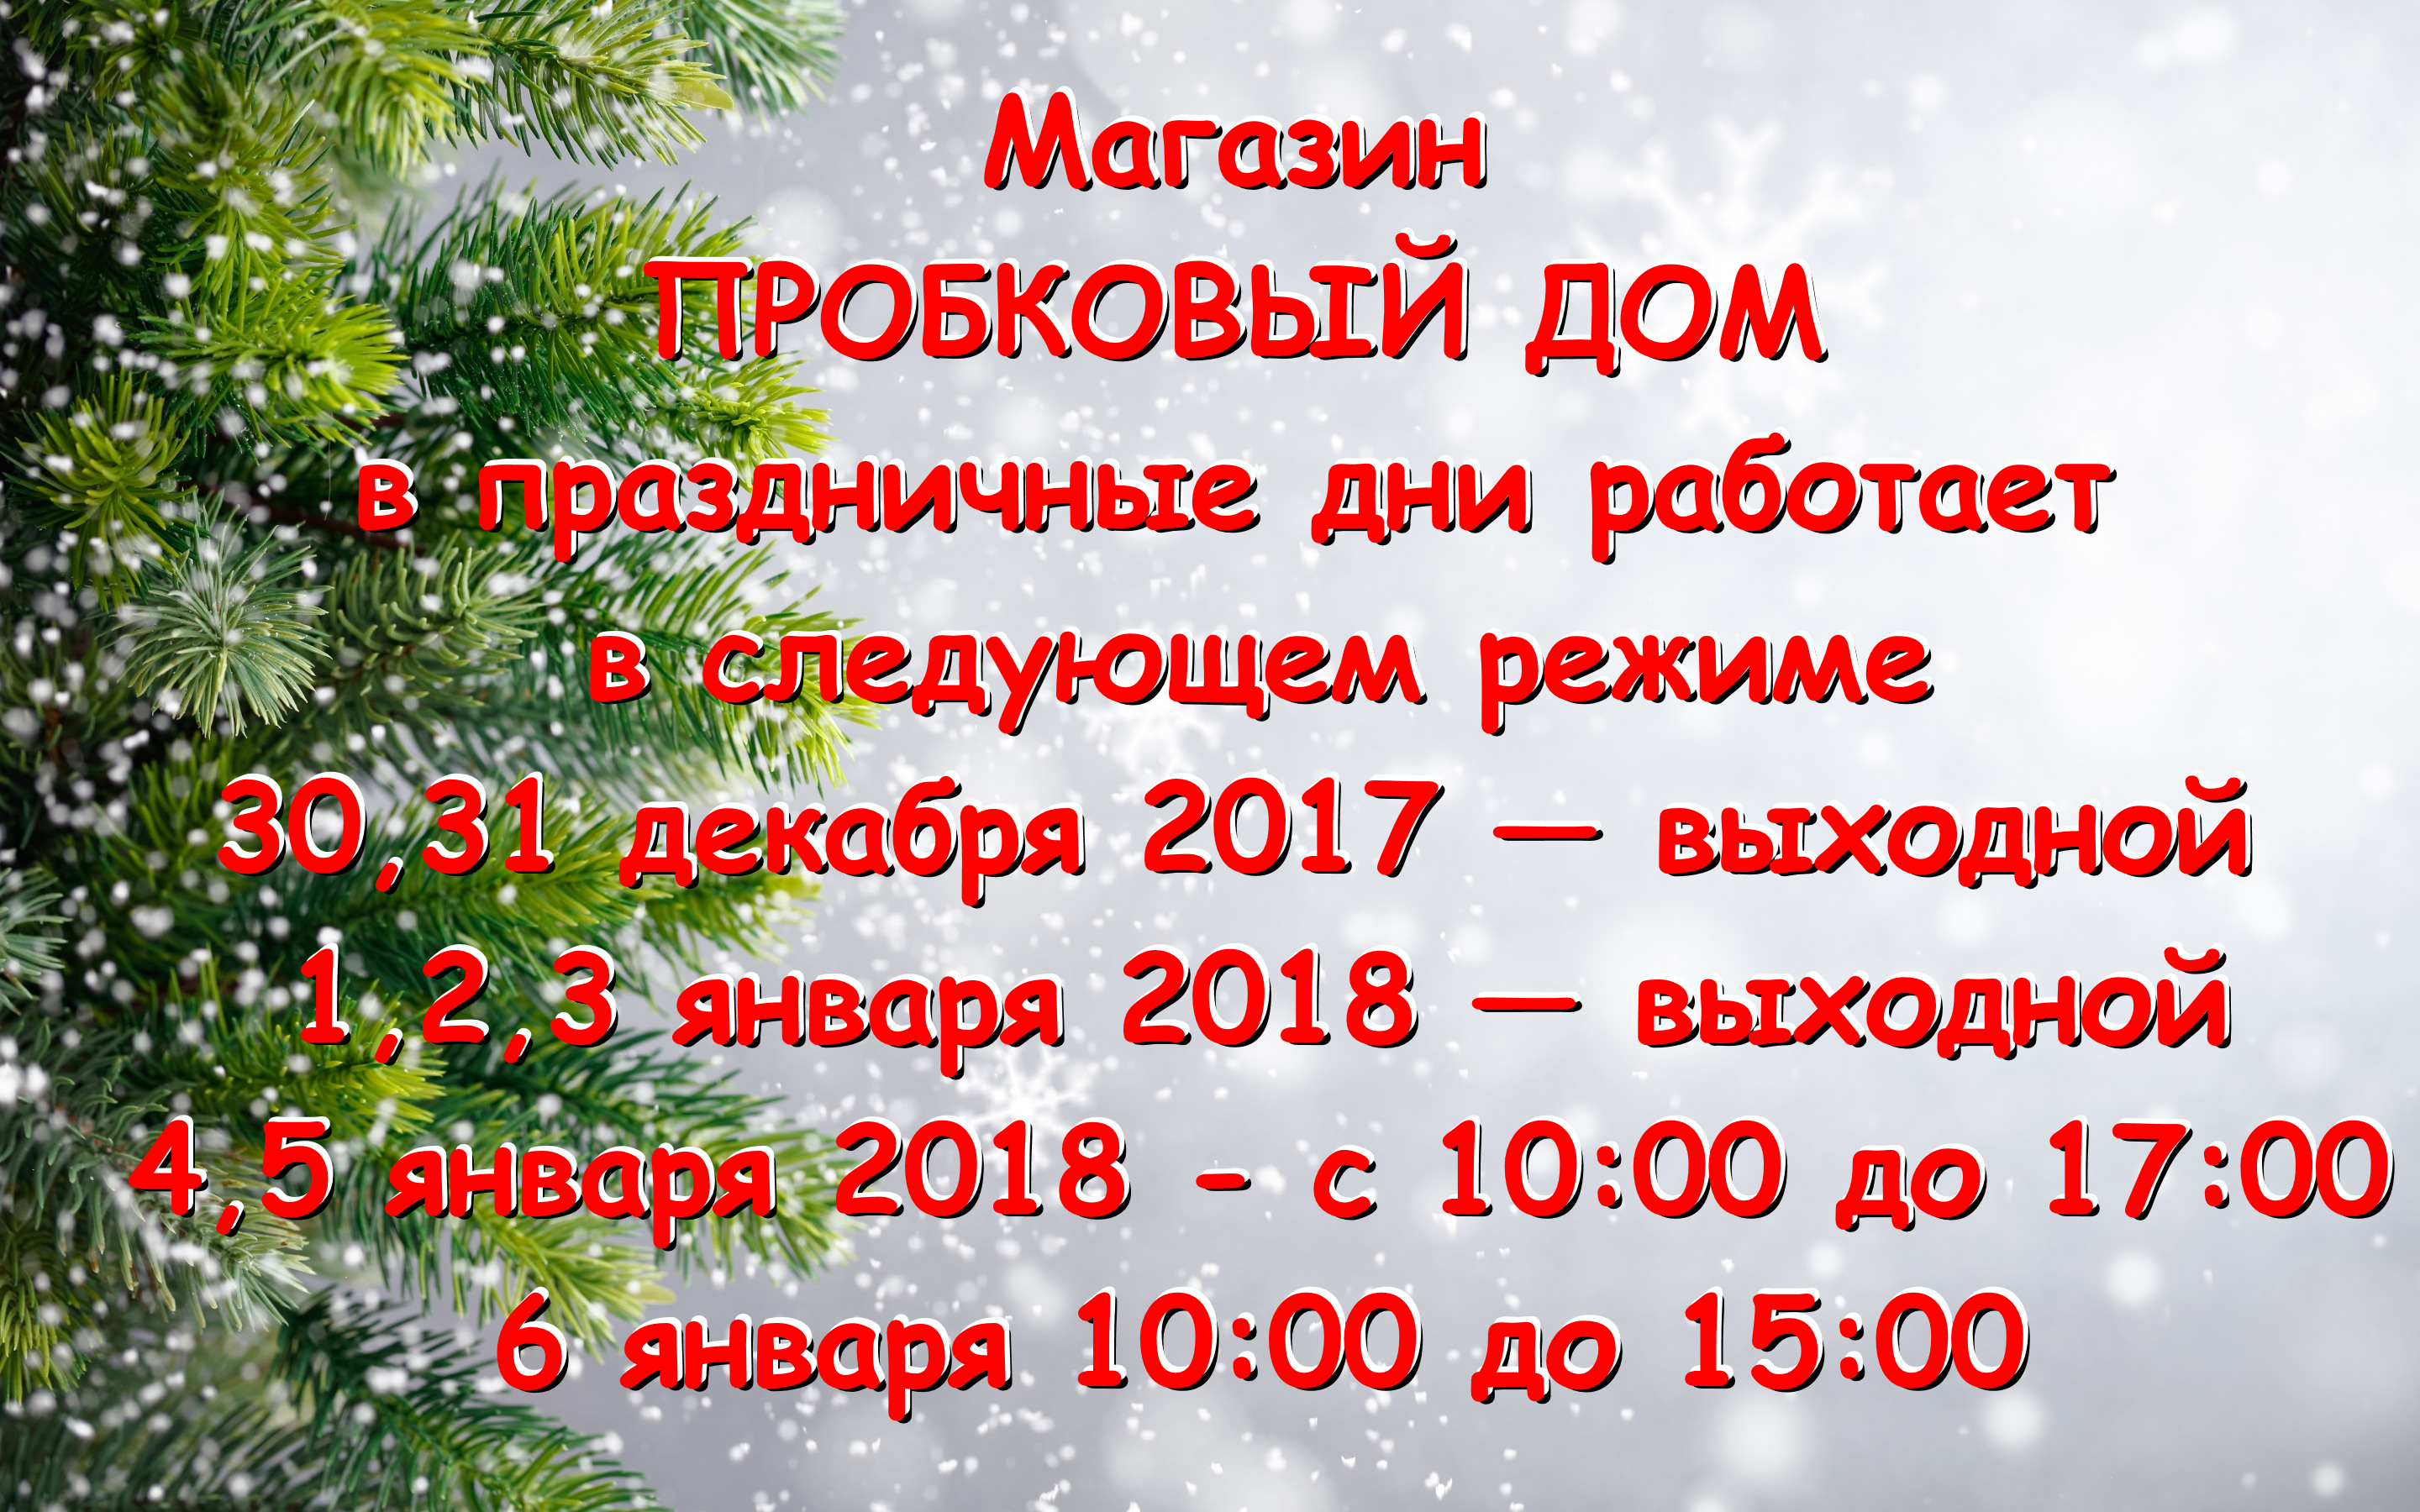 rozhdestvo-christmas-elka-sneg-snow-novyi-god-xmas-winter-zi